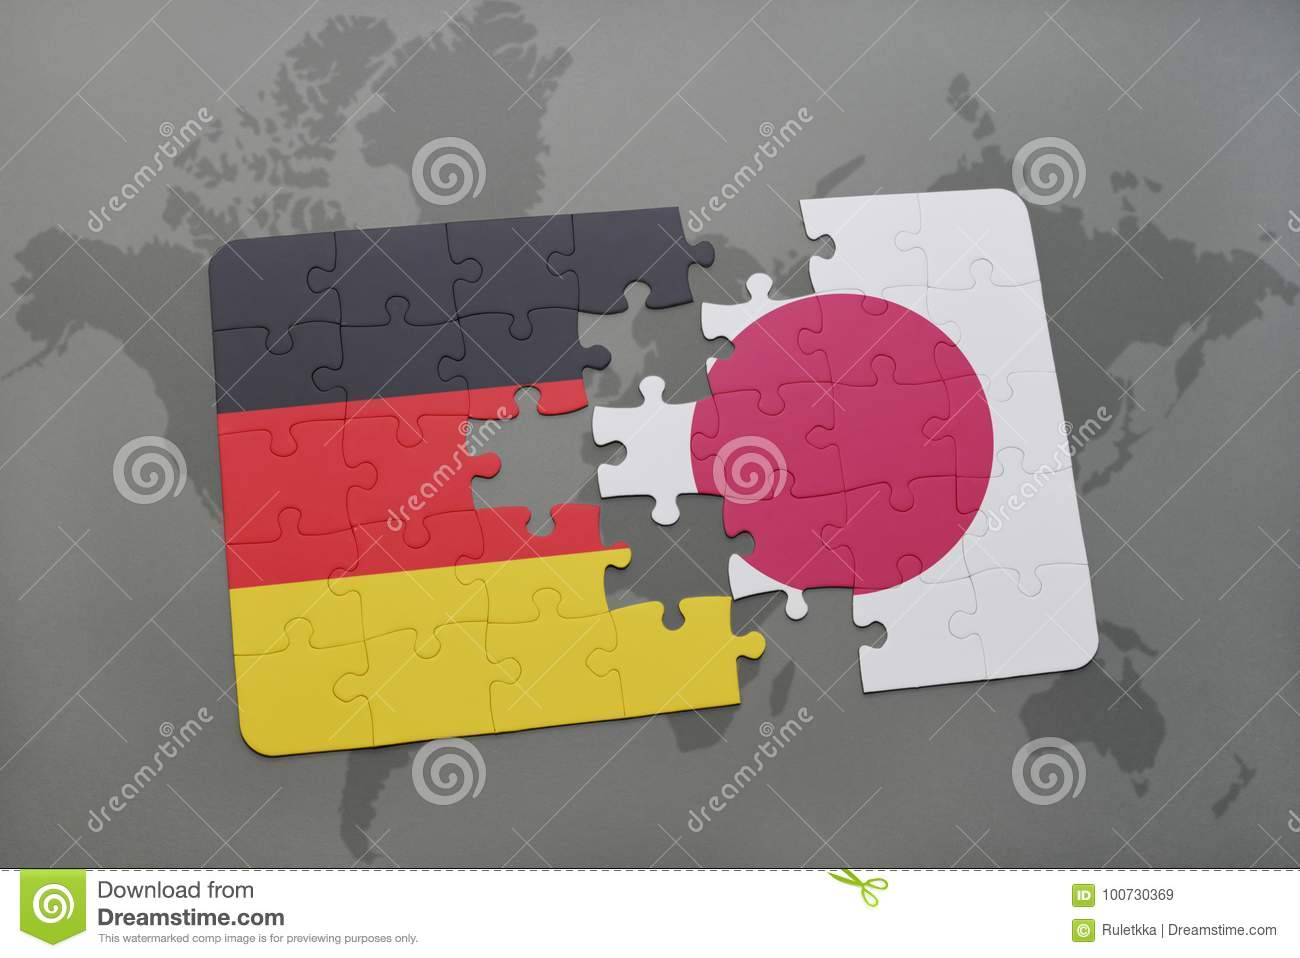 puzzle with the national flag of germany and japan on a world map background.